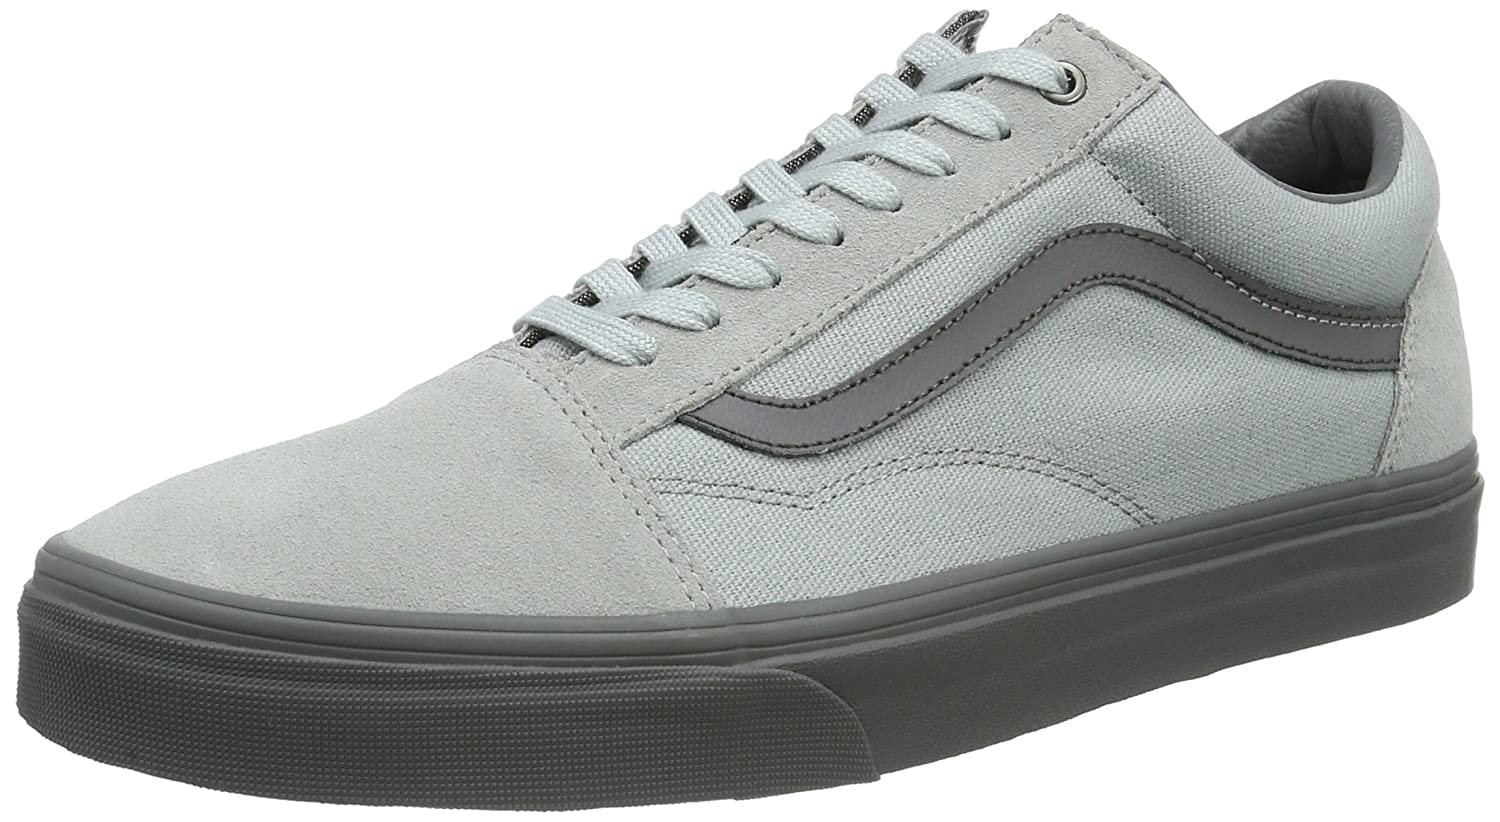 Vans Unisex Old Skool Classic Skate Shoes B01I22EI6E 12|High-rise/Pewter